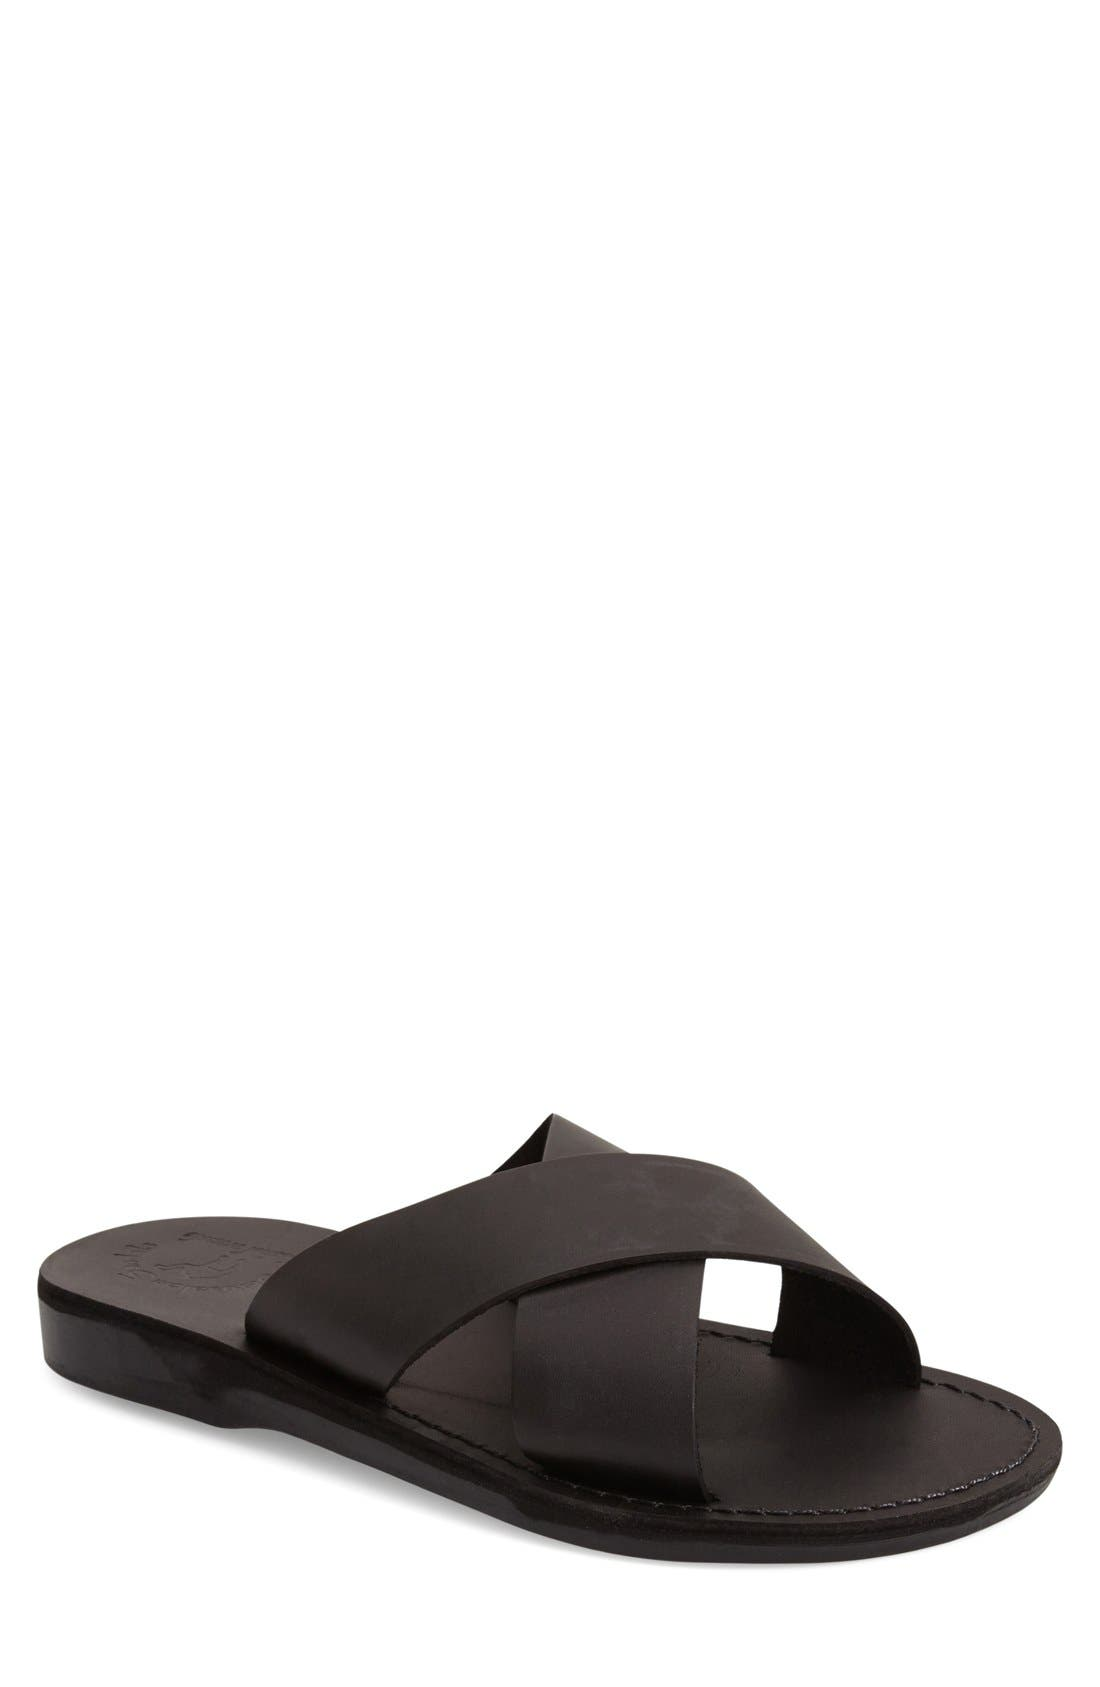 Alternate Image 1 Selected - Jerusalem Sandals 'Elan' Slide Sandal (Men)